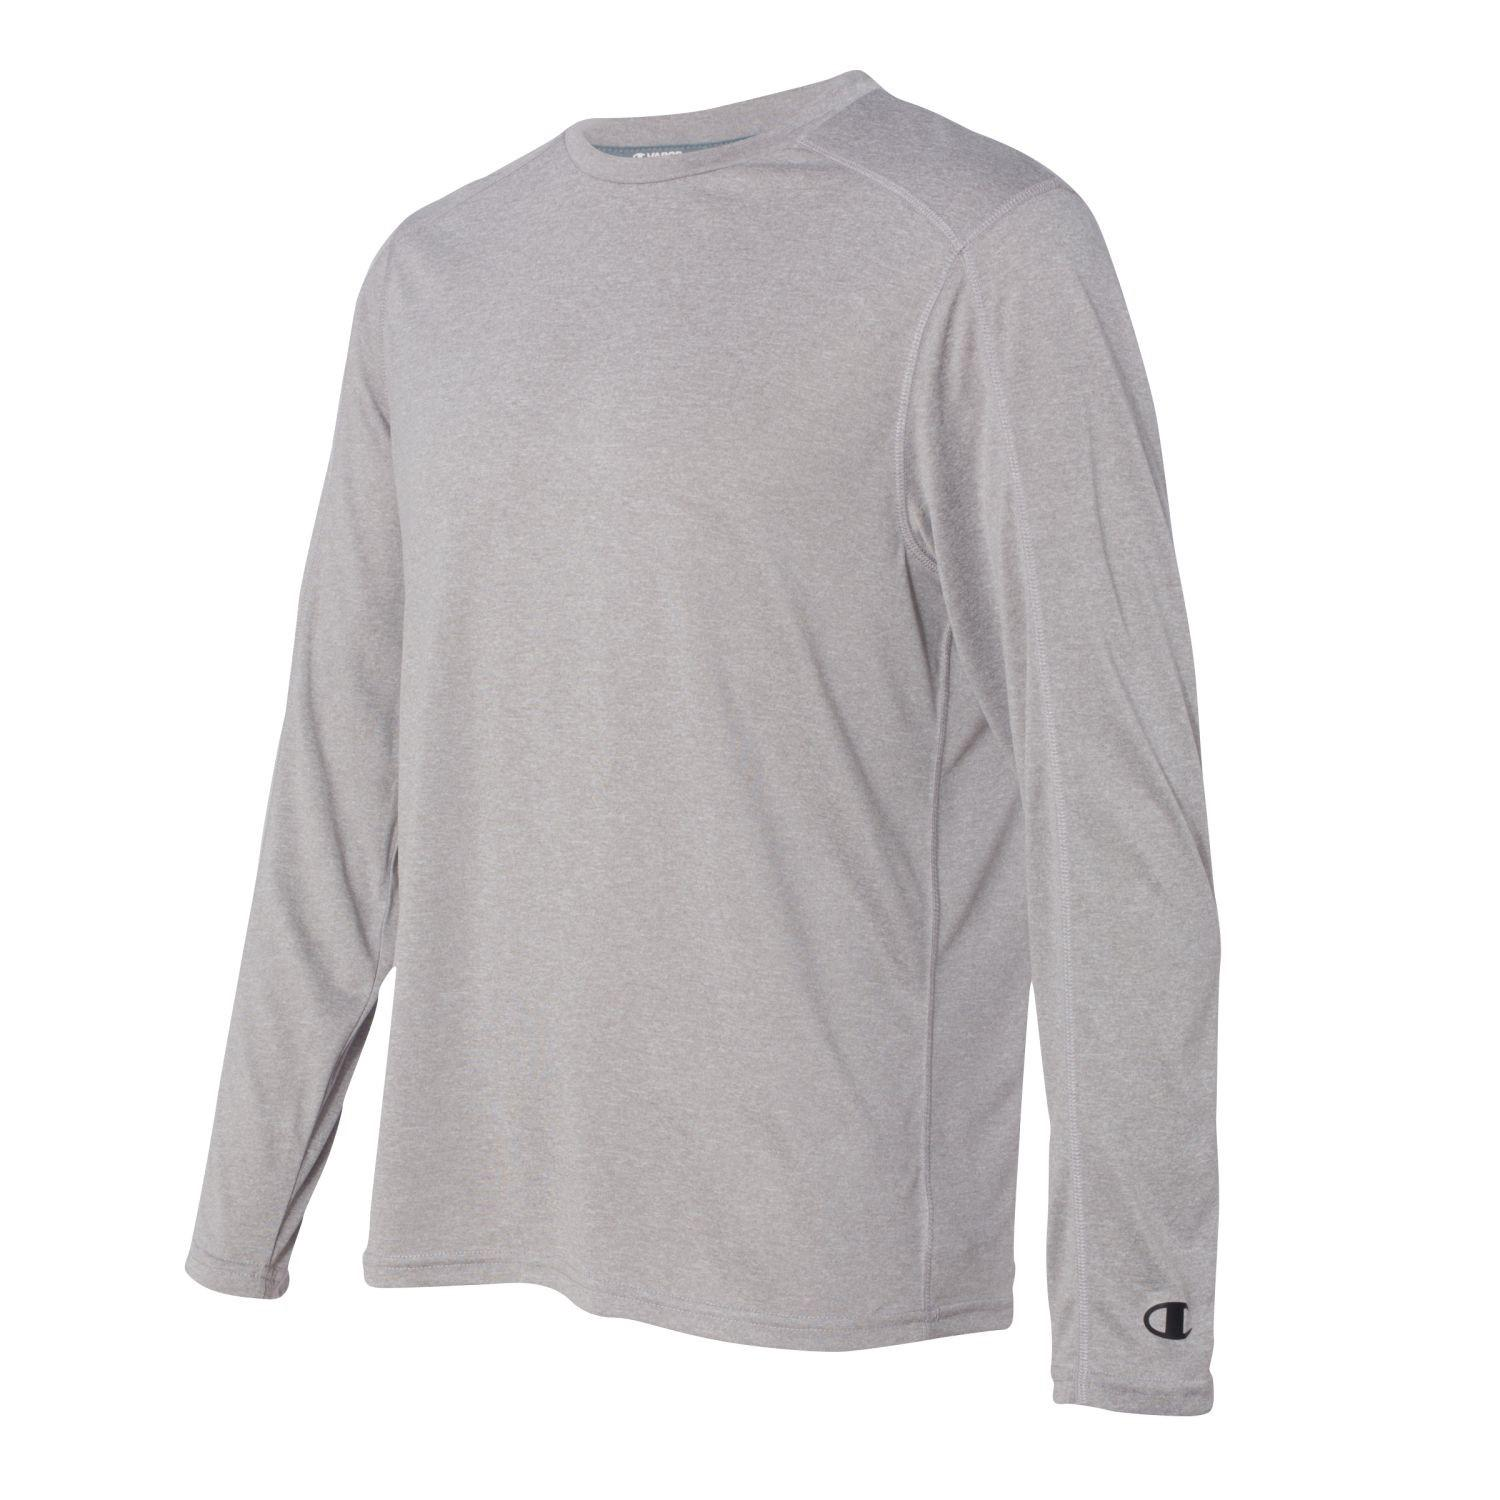 3d6d72bb Champion - Gray Vapor Performance Heather Long Sleeve T-shirt - Cv26 for Men  -